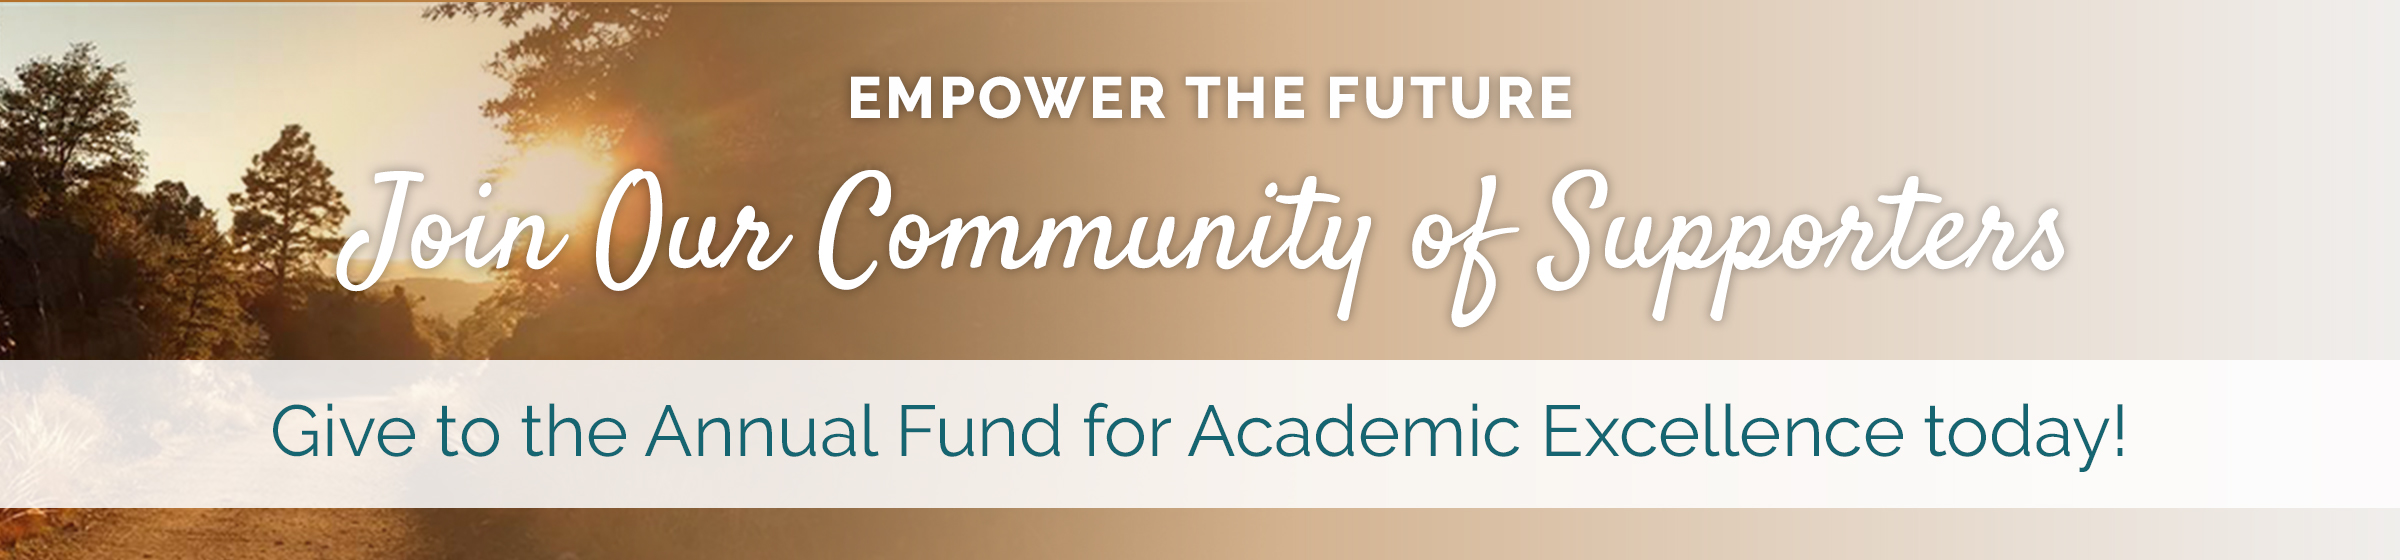 Empower the Future - Join our community of supporters by giving to the Annual Fund for Academic Excellence today!